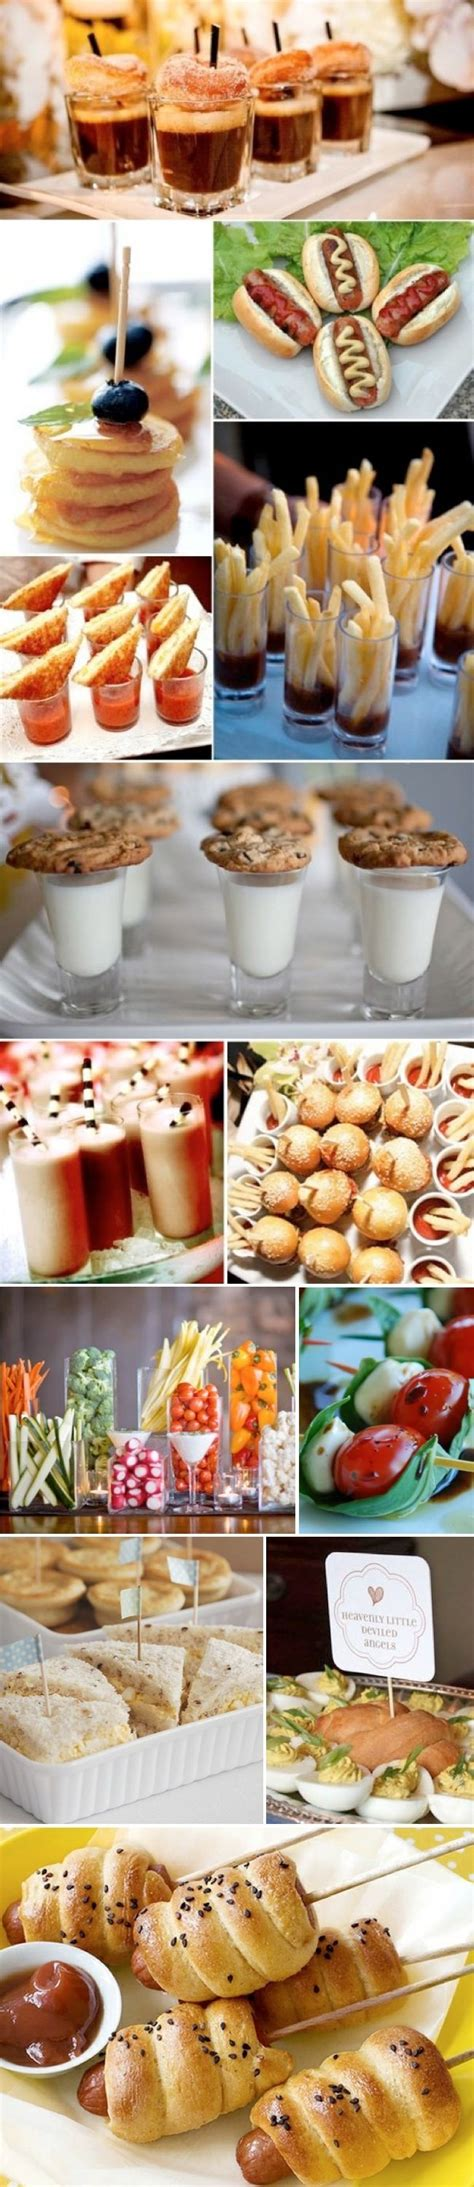 25 best ideas about food stations on pinterest wedding food stations wedding food bars and